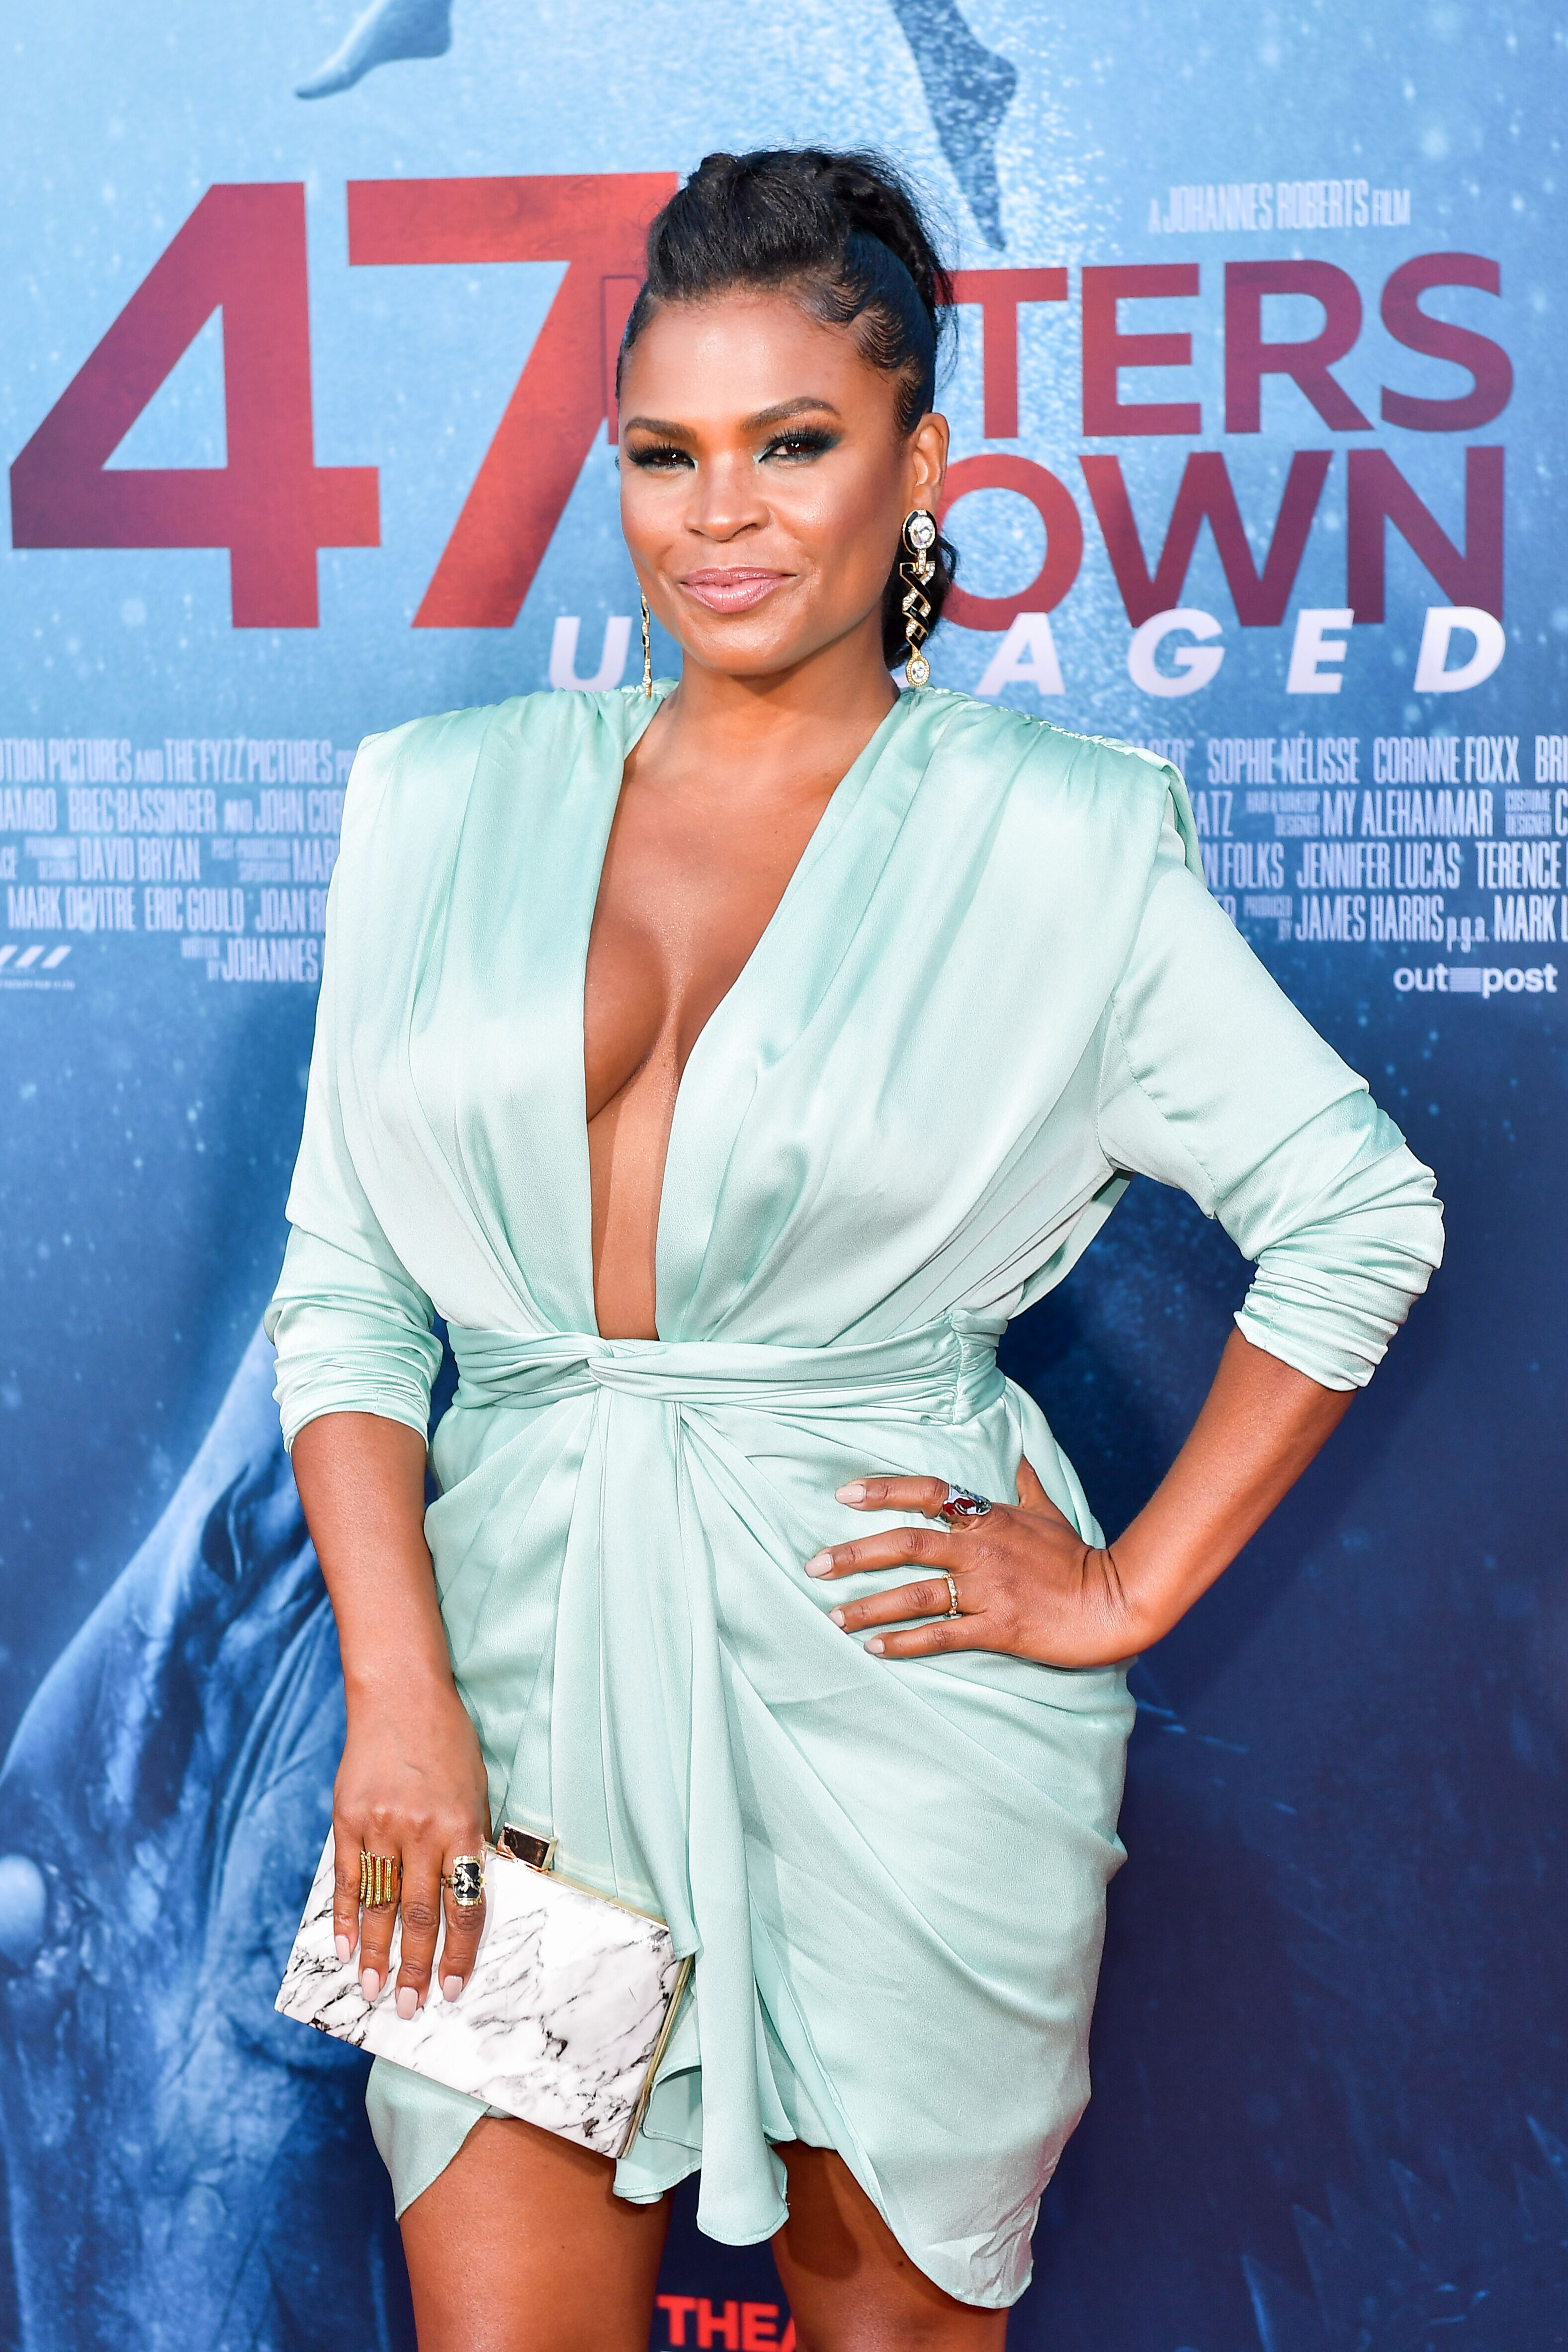 """Nia Long at the LA premiere of """"47 Meters Down Uncaged"""" in  2019 